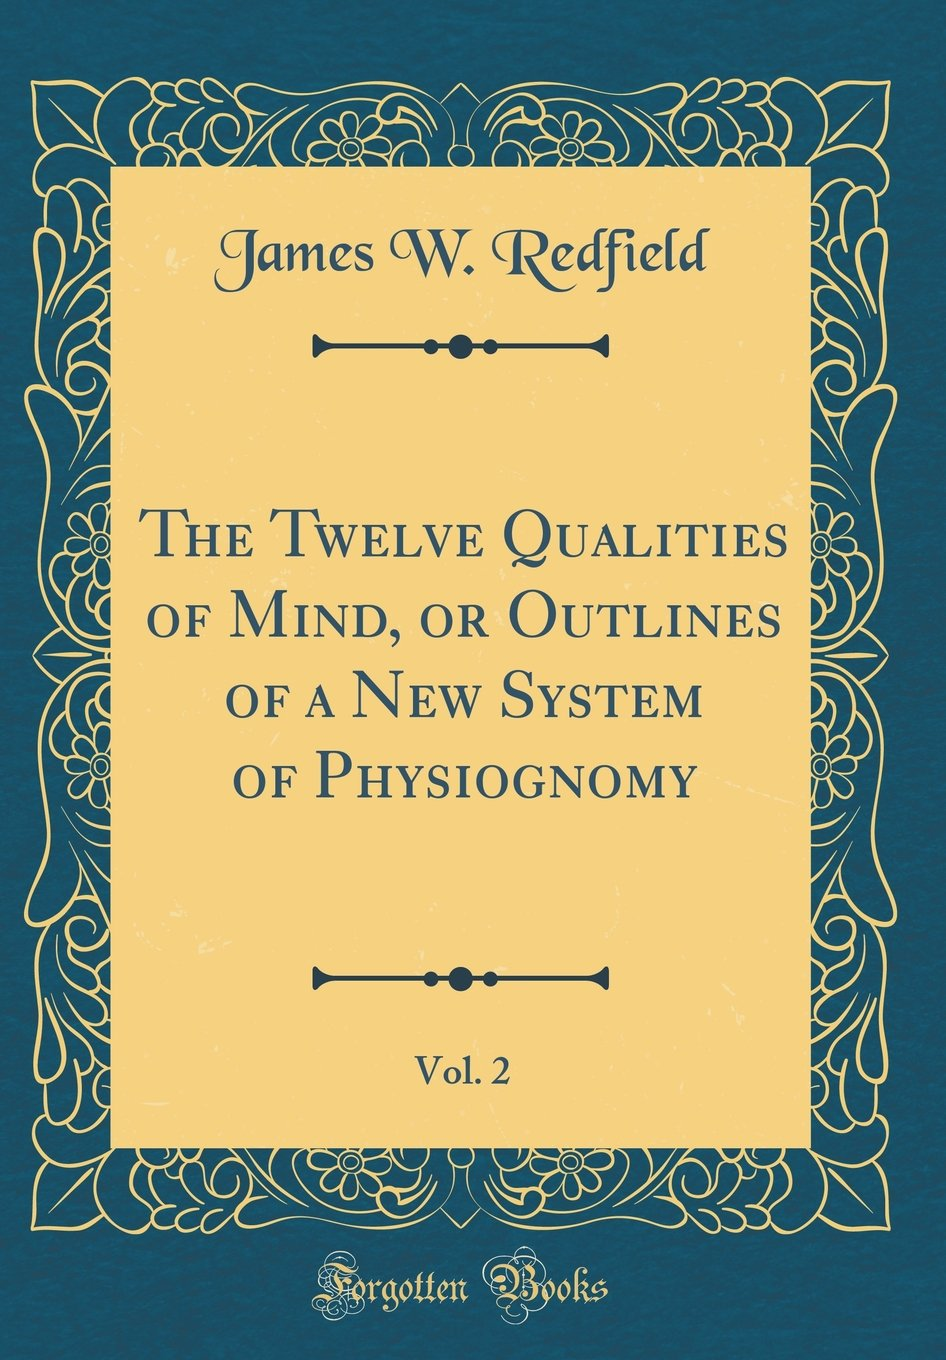 Read Online The Twelve Qualities of Mind, or Outlines of a New System of Physiognomy, Vol. 2 (Classic Reprint) PDF